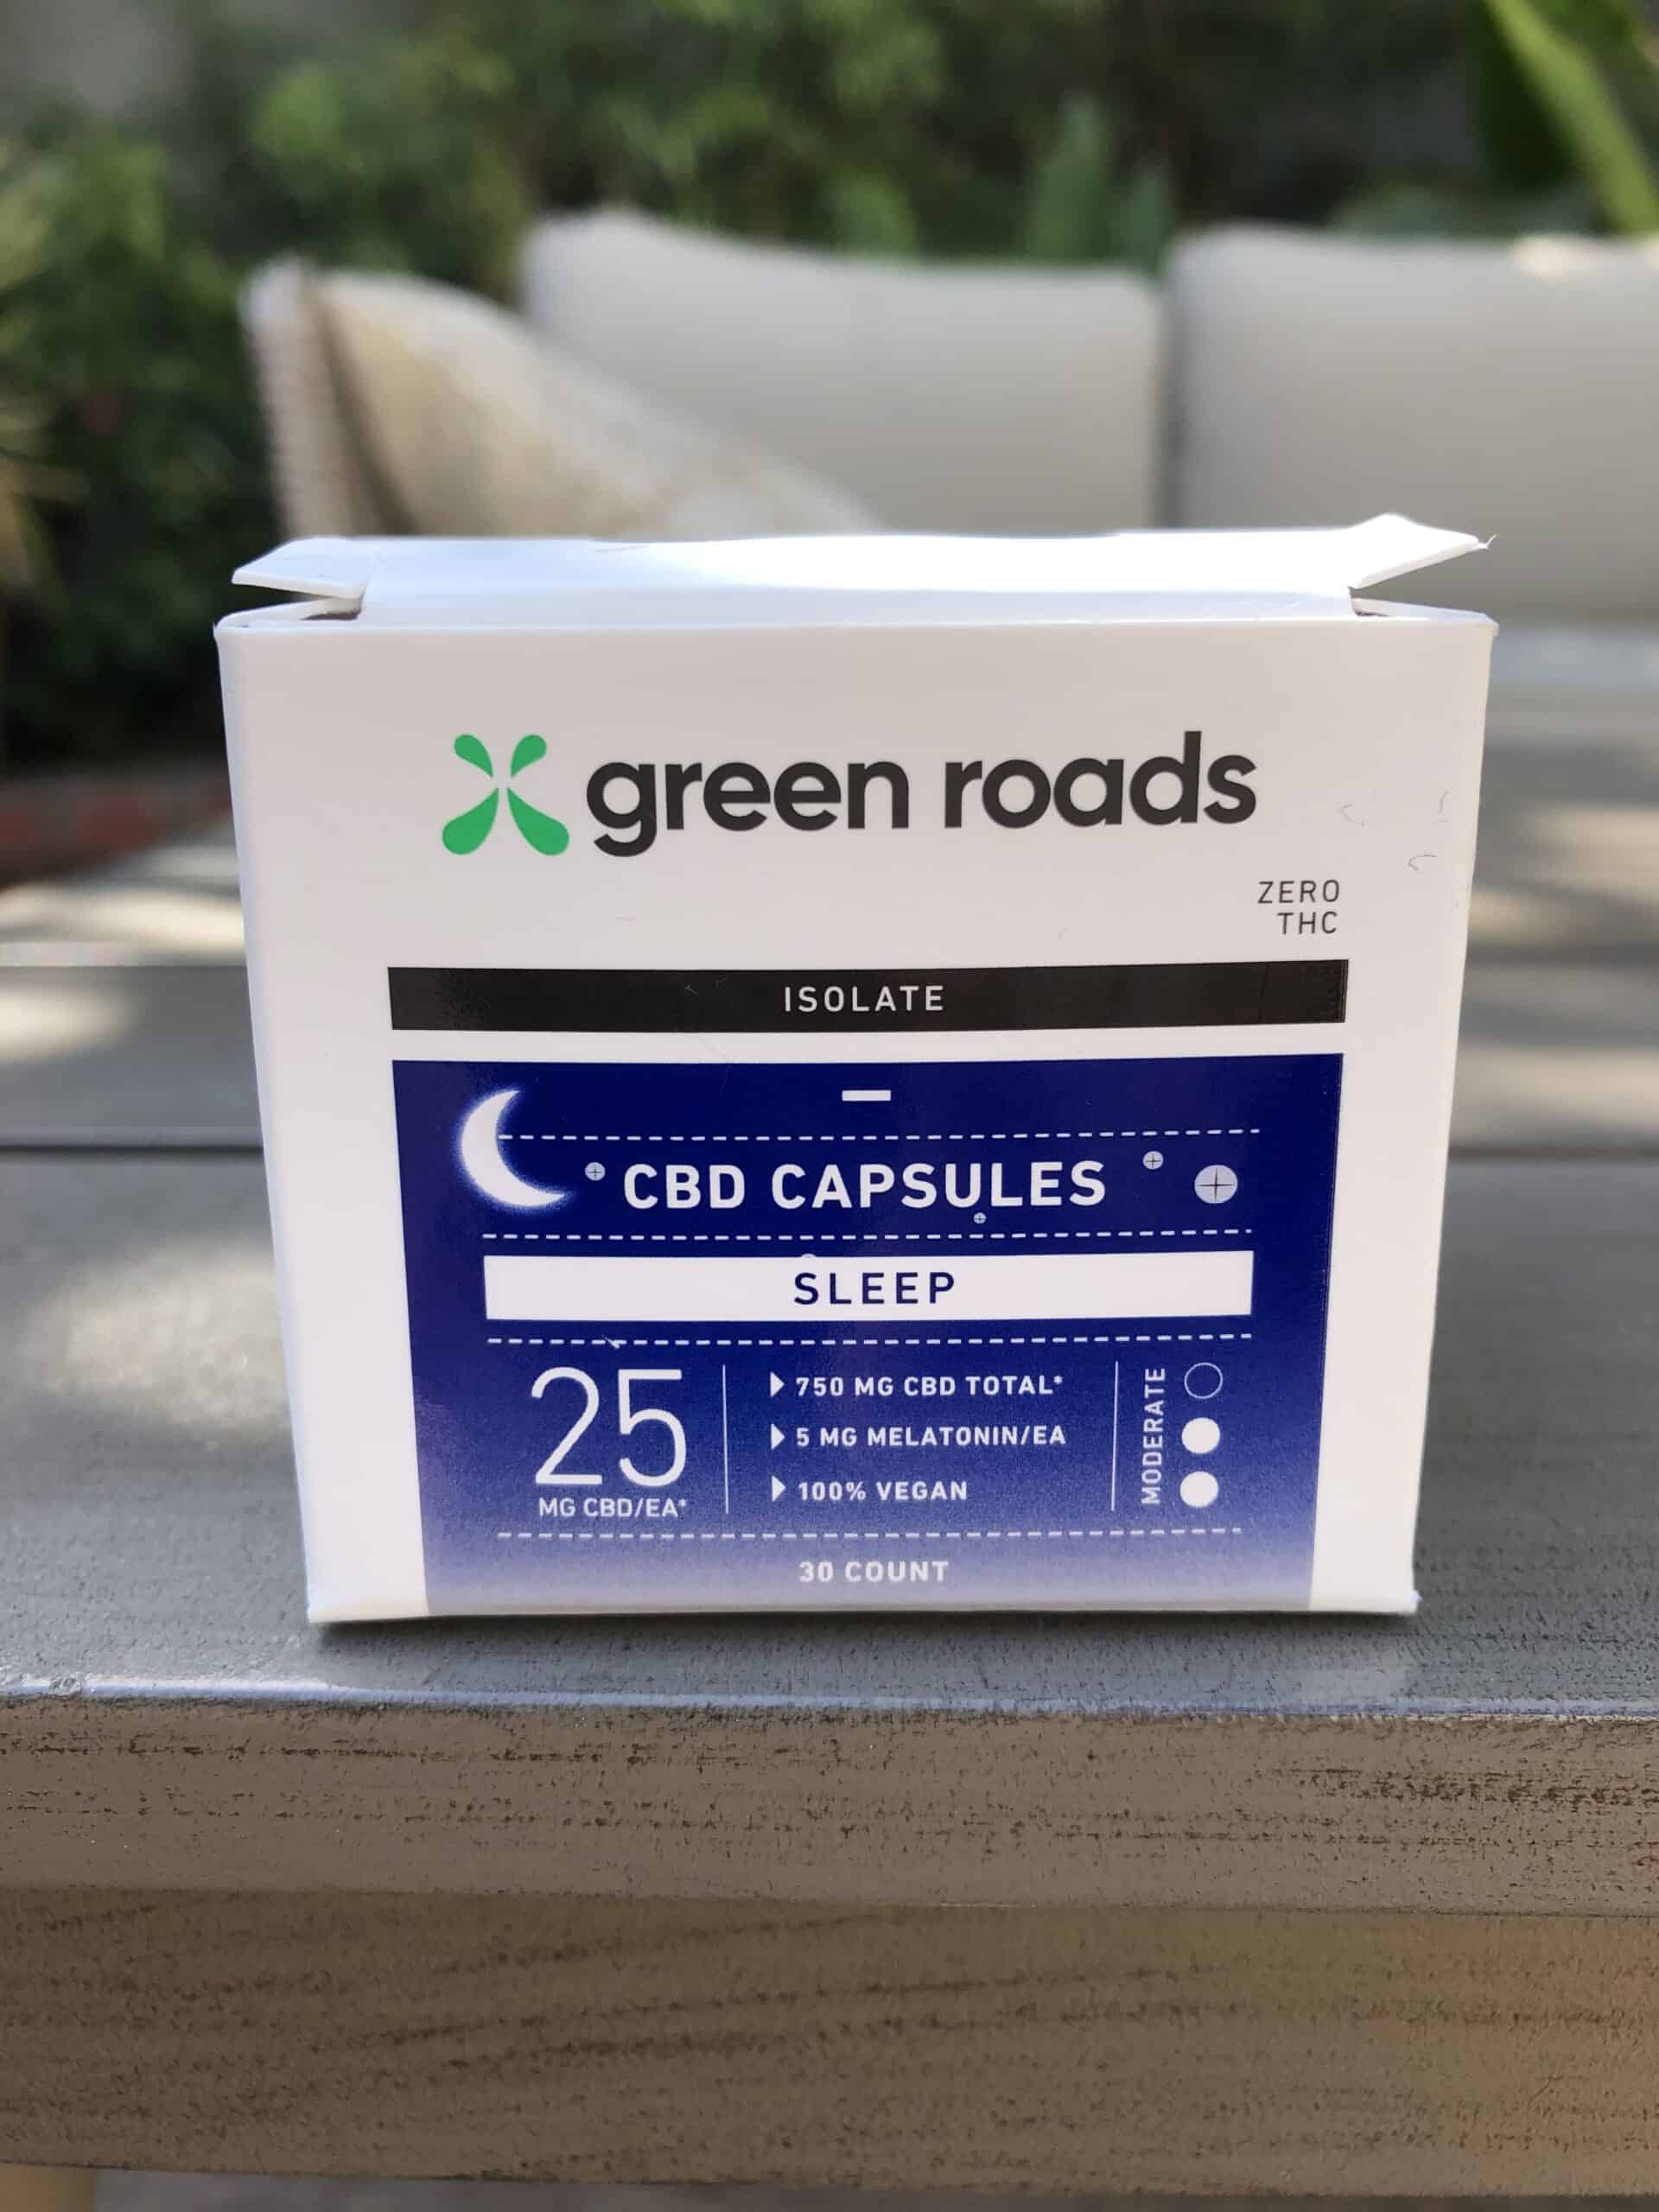 green roads cbd sleep capsules save on cannabis review